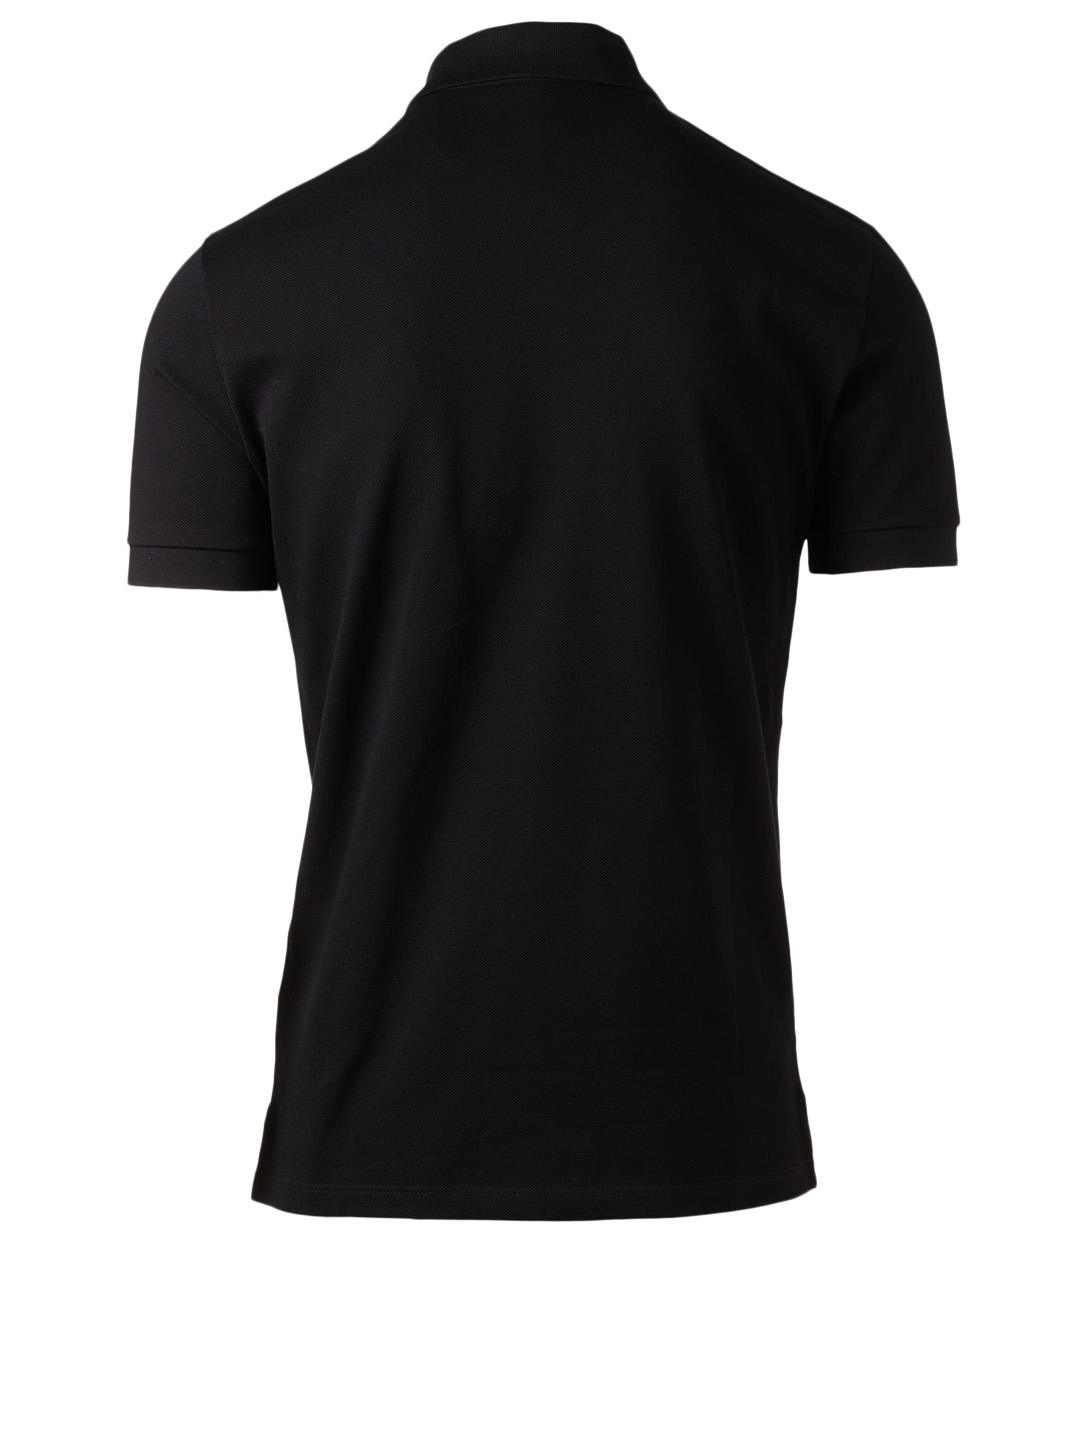 GIVENCHY Reverse Givenchy Polo Men's Black